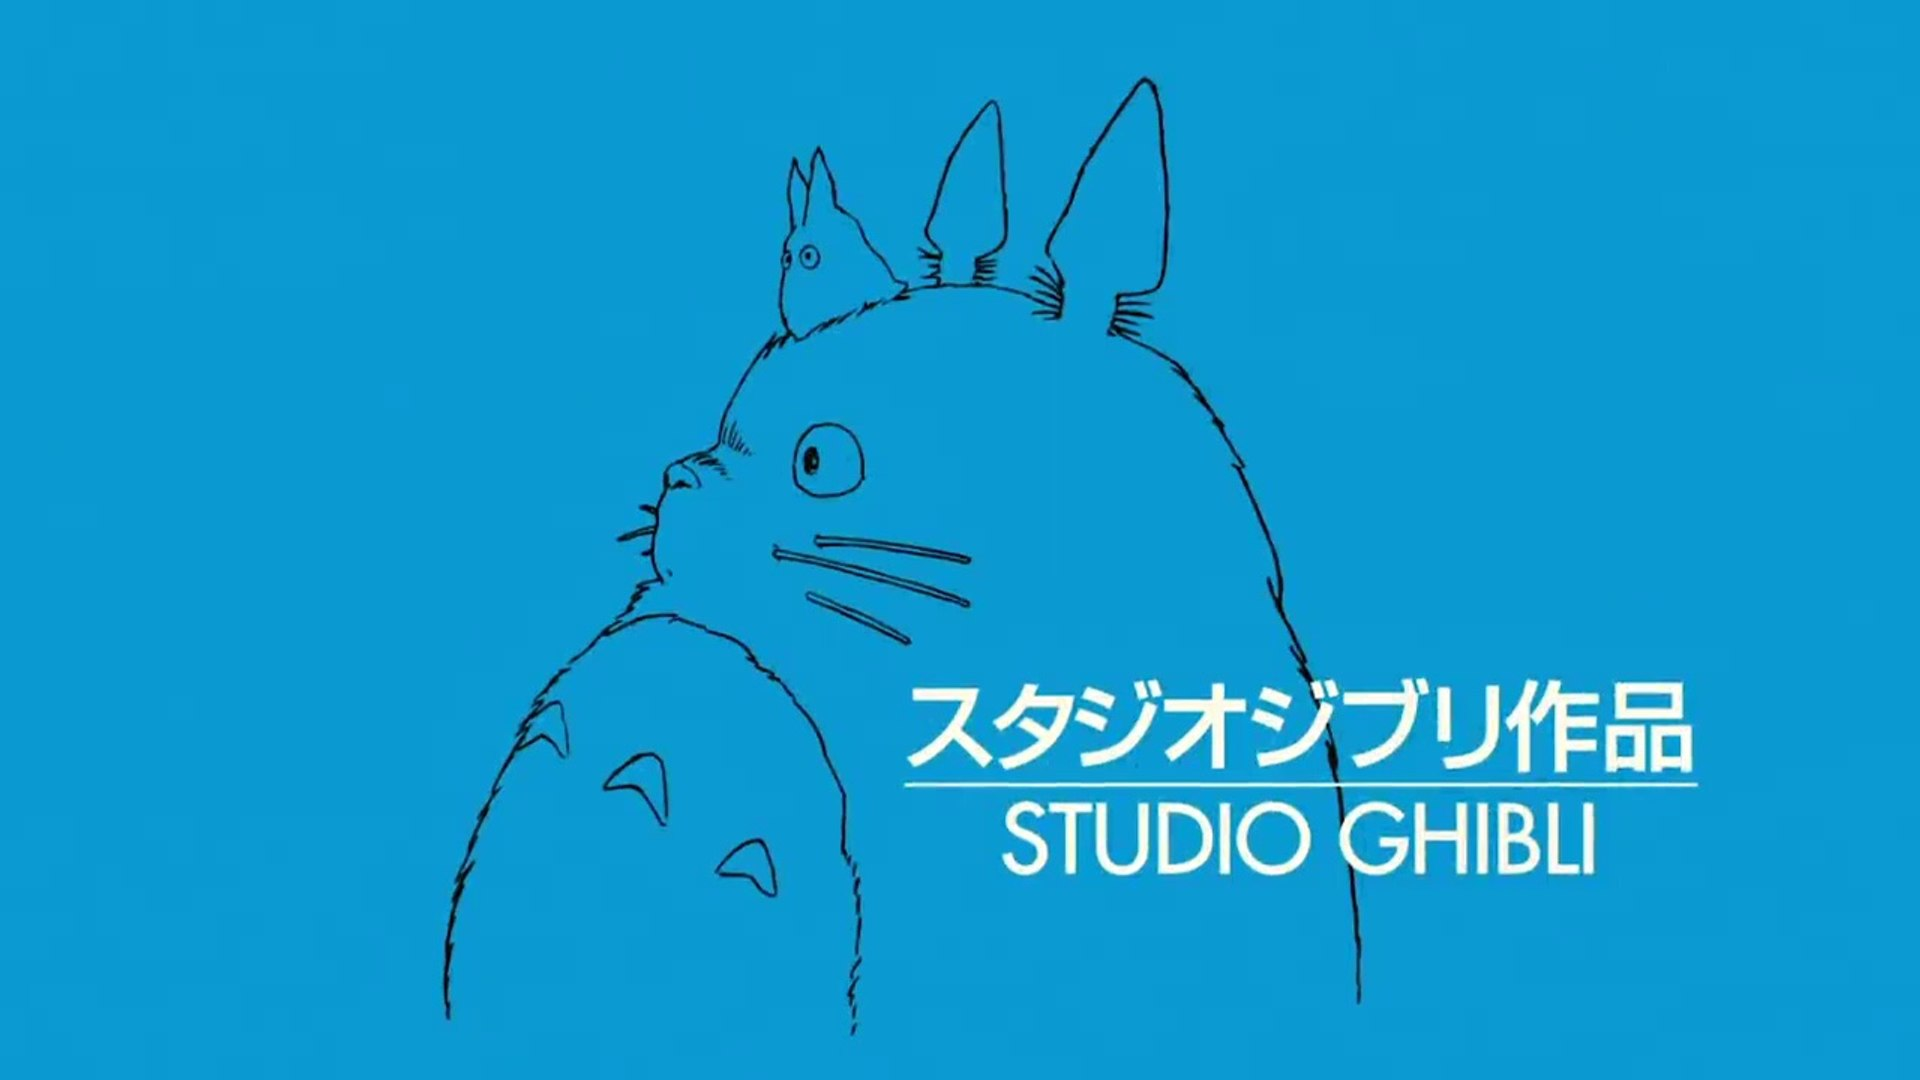 Studio Ghibli Film Collection Coming To Netflix | Netflix